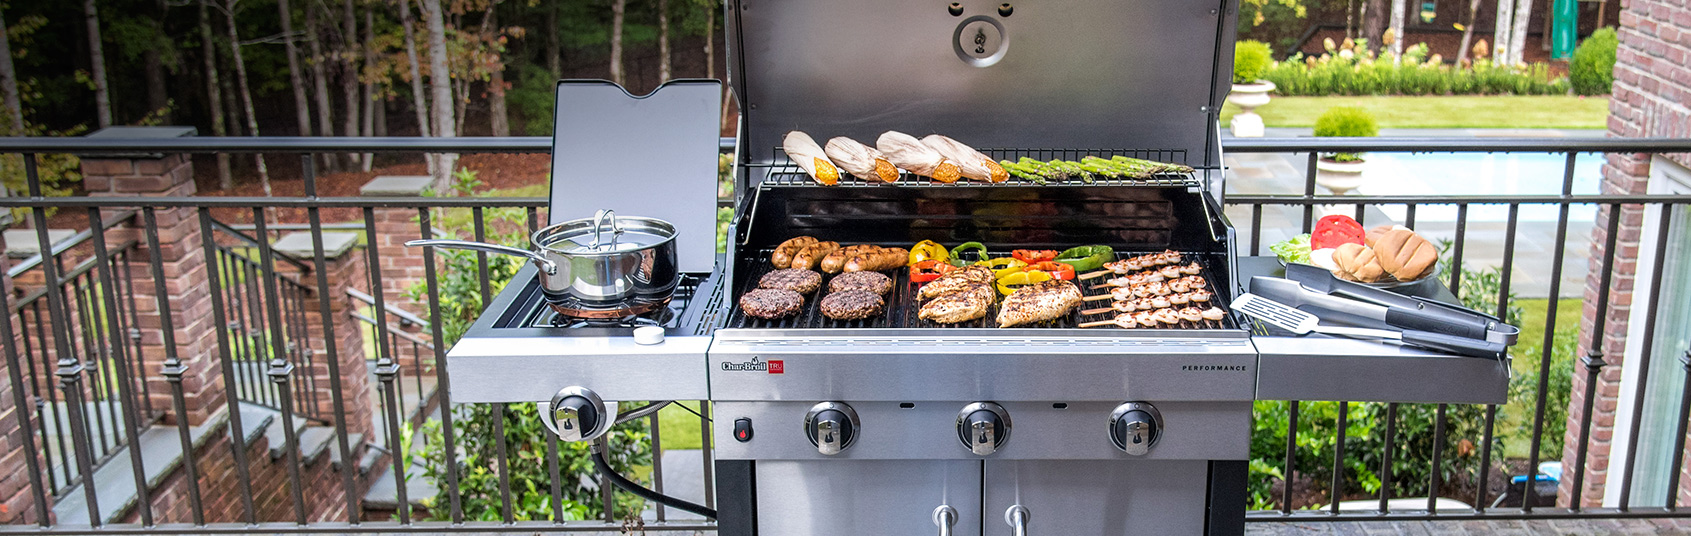 outdoor grill grills RIWLXPB